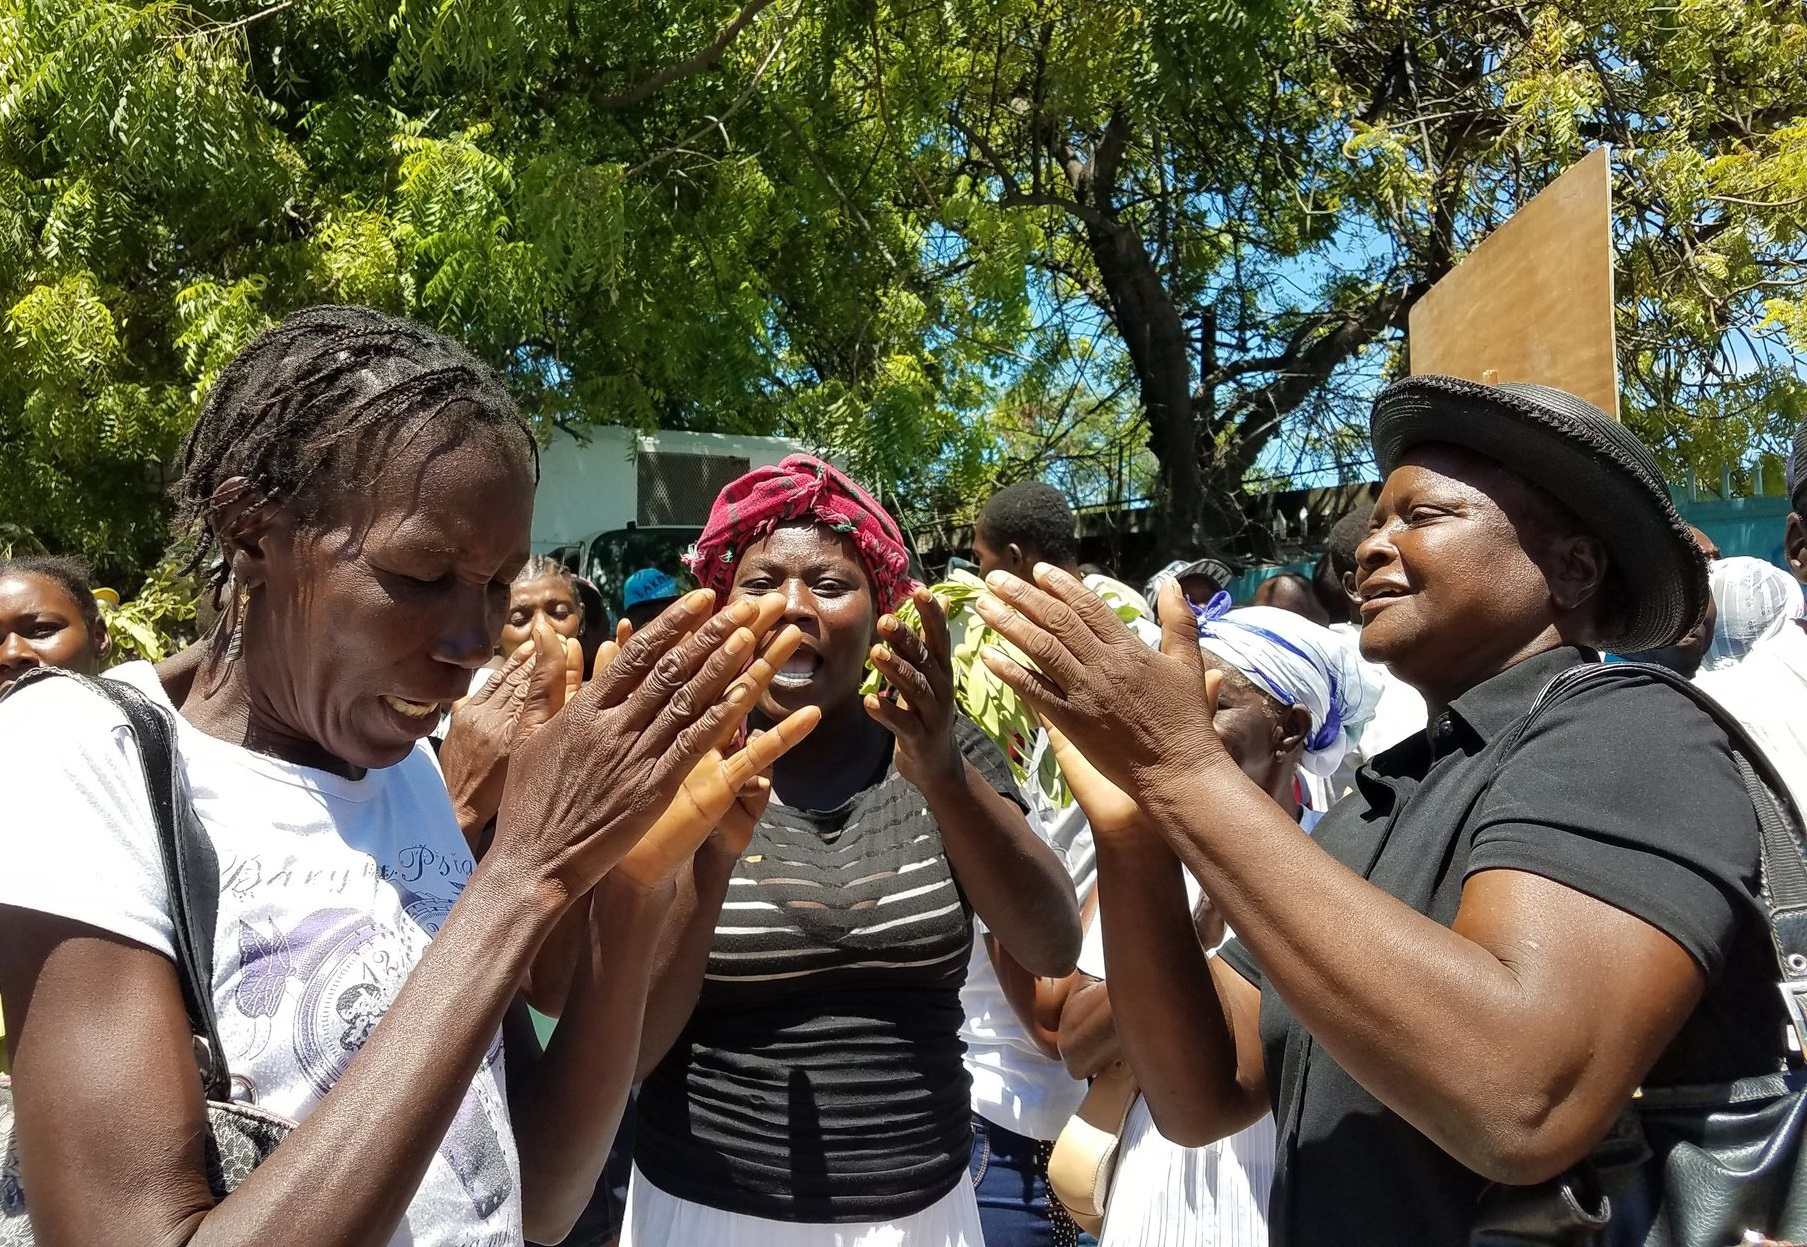 Women at Cholera Protest